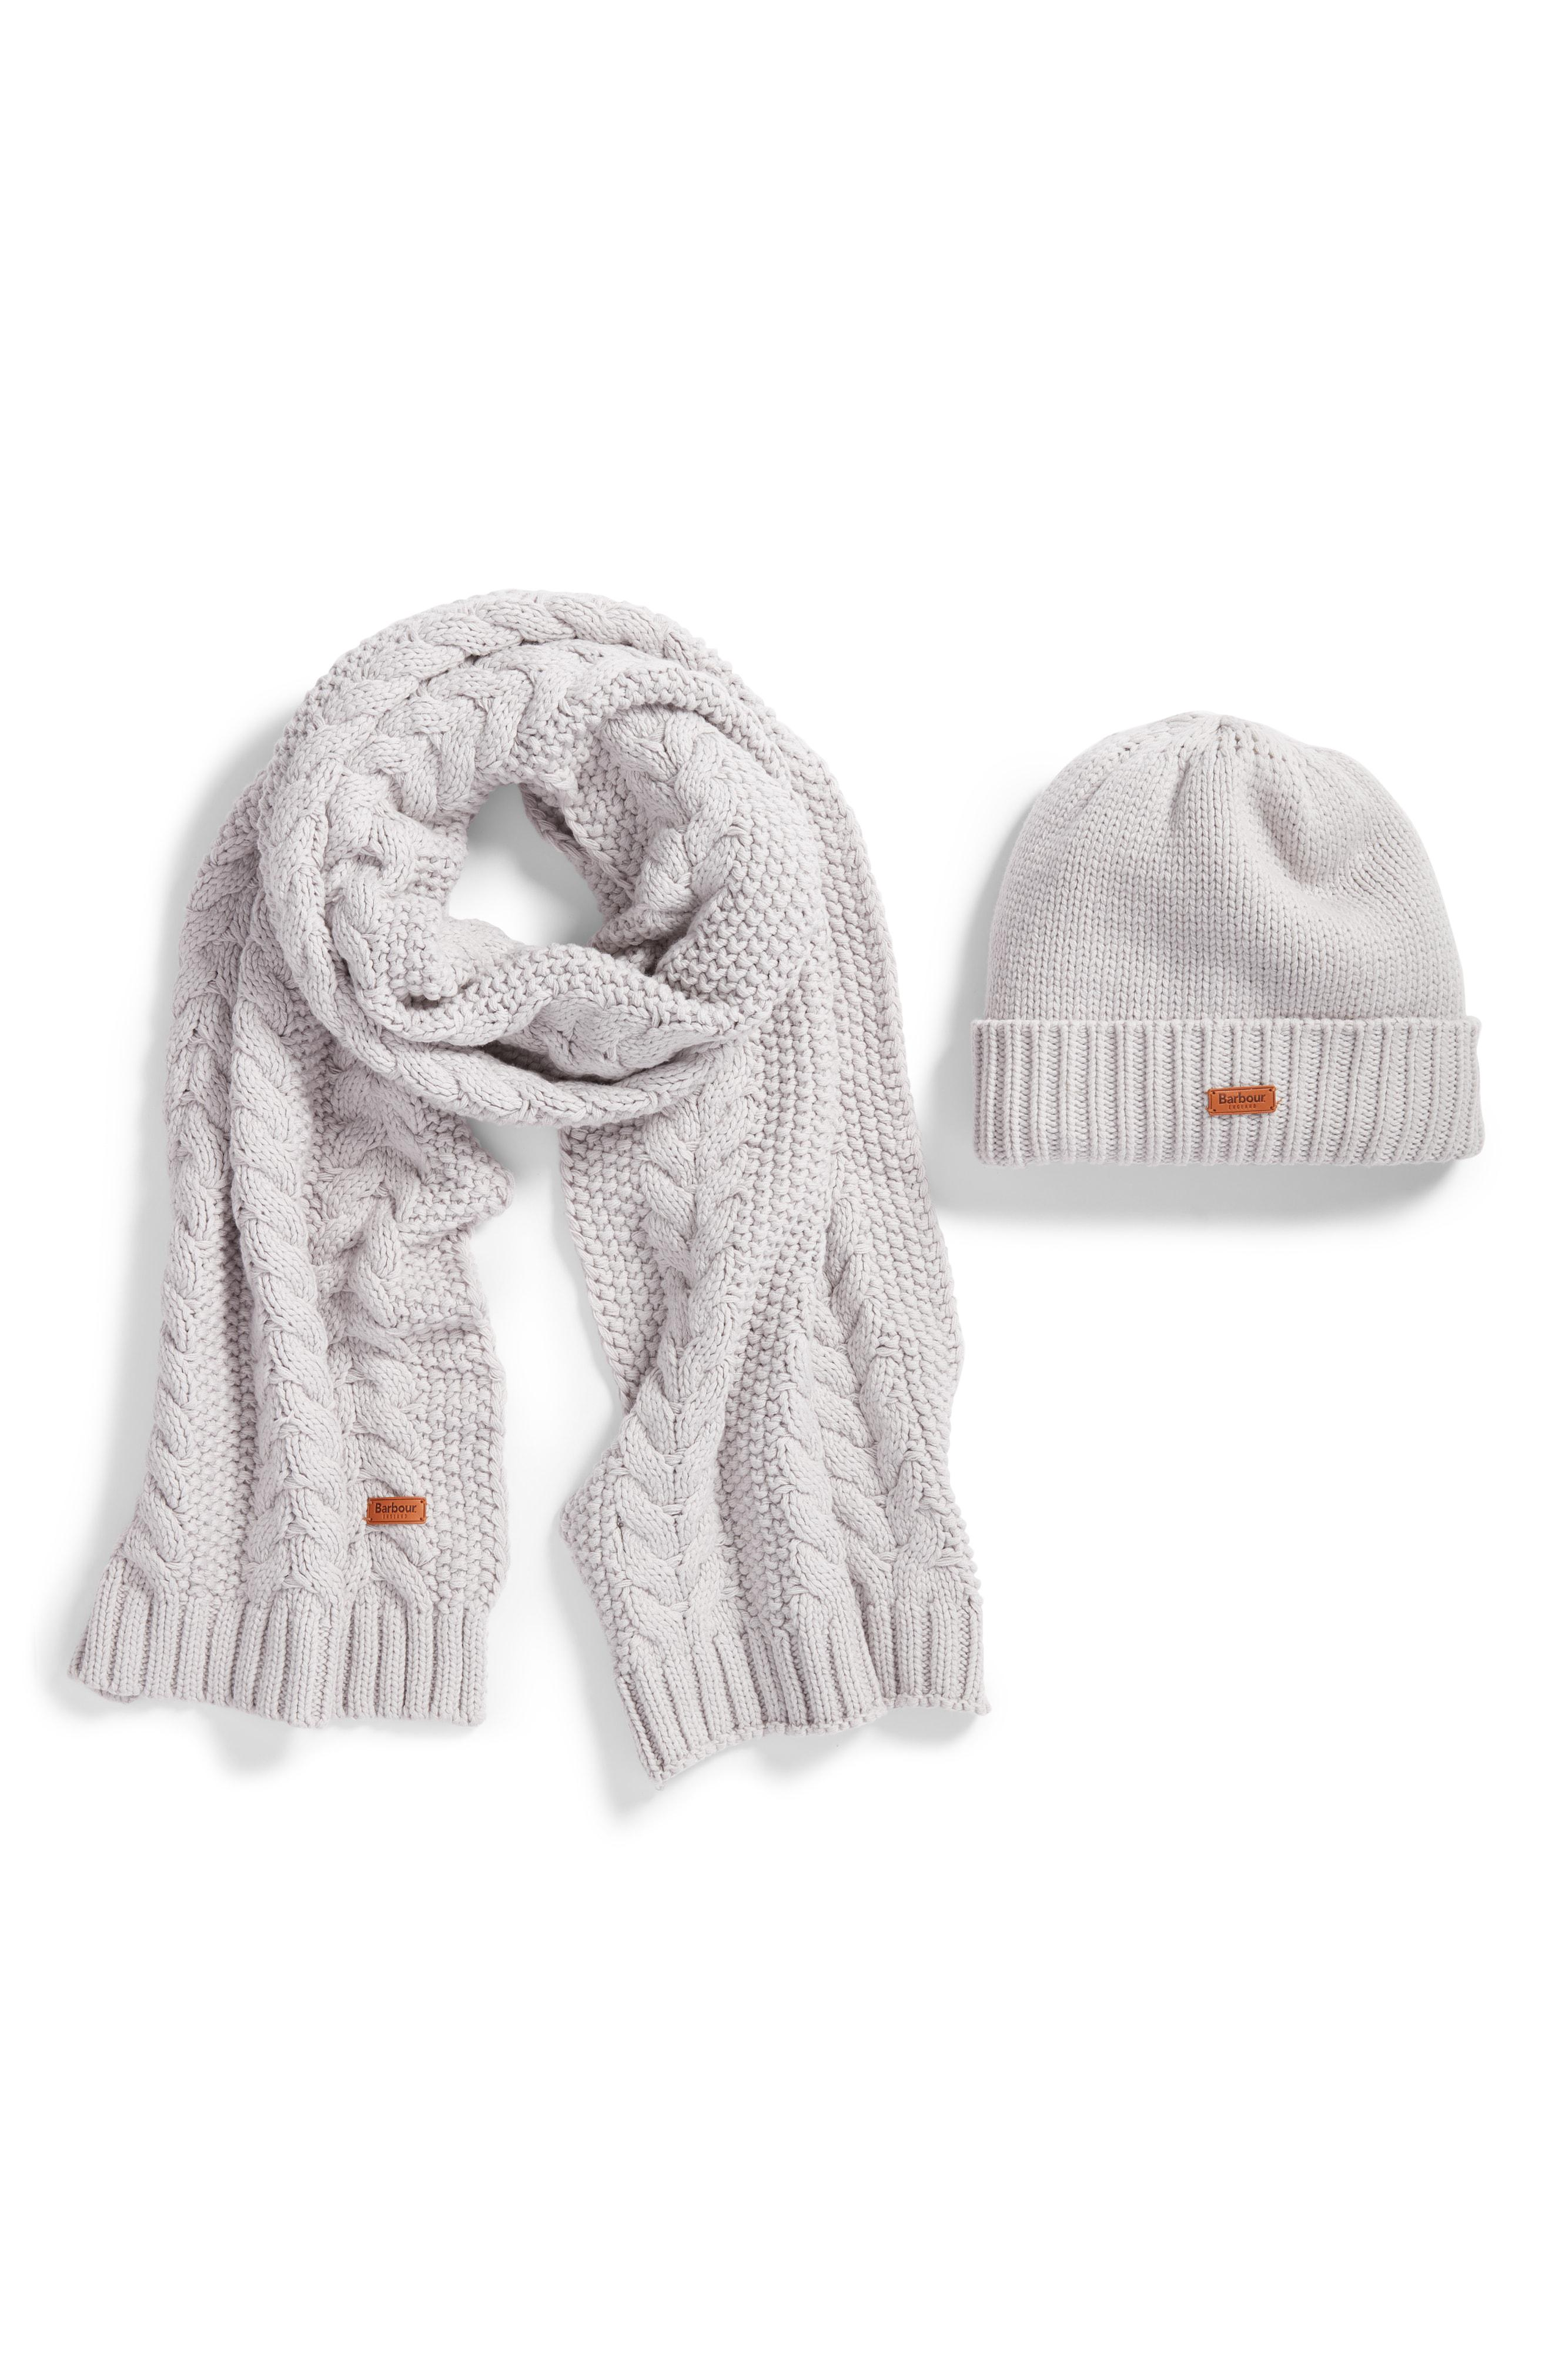 73fb2bb3519 Lyst - Barbour Cable Knit Hat   Scarf Set in White - Save 41%